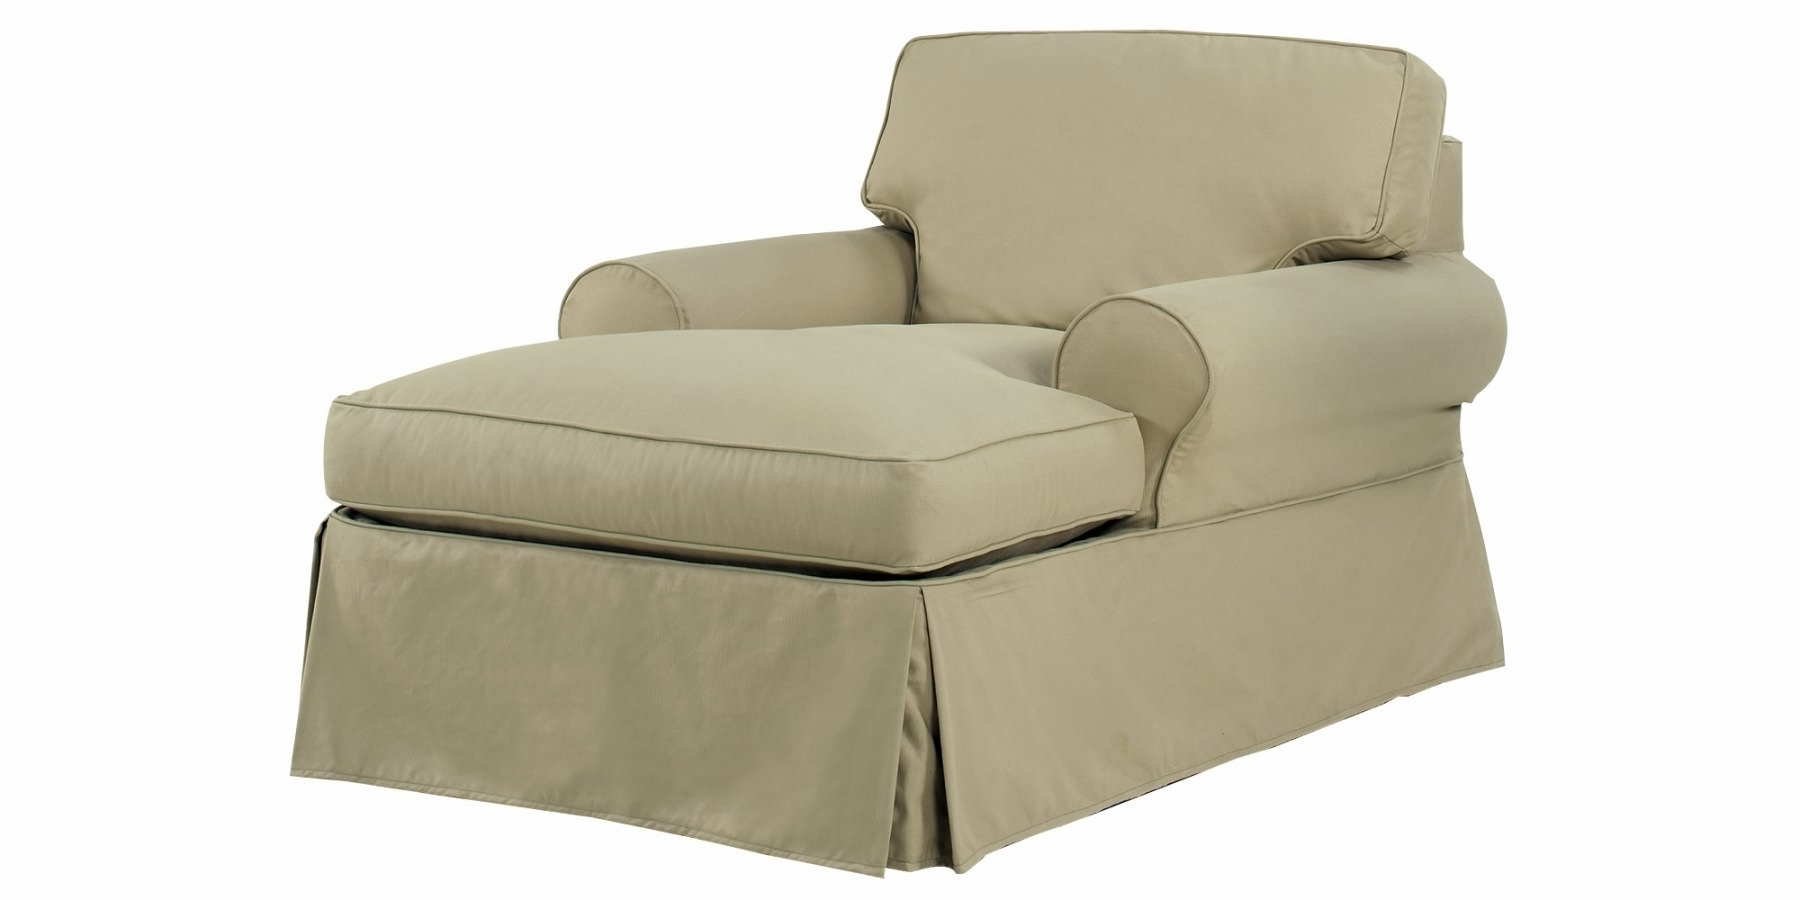 Most Recently Released Sofa Lounge Chairs Throughout Armchair : Lounge Chair Outdoor Indoor Chaise Lounge Chaise Lounge (View 3 of 20)